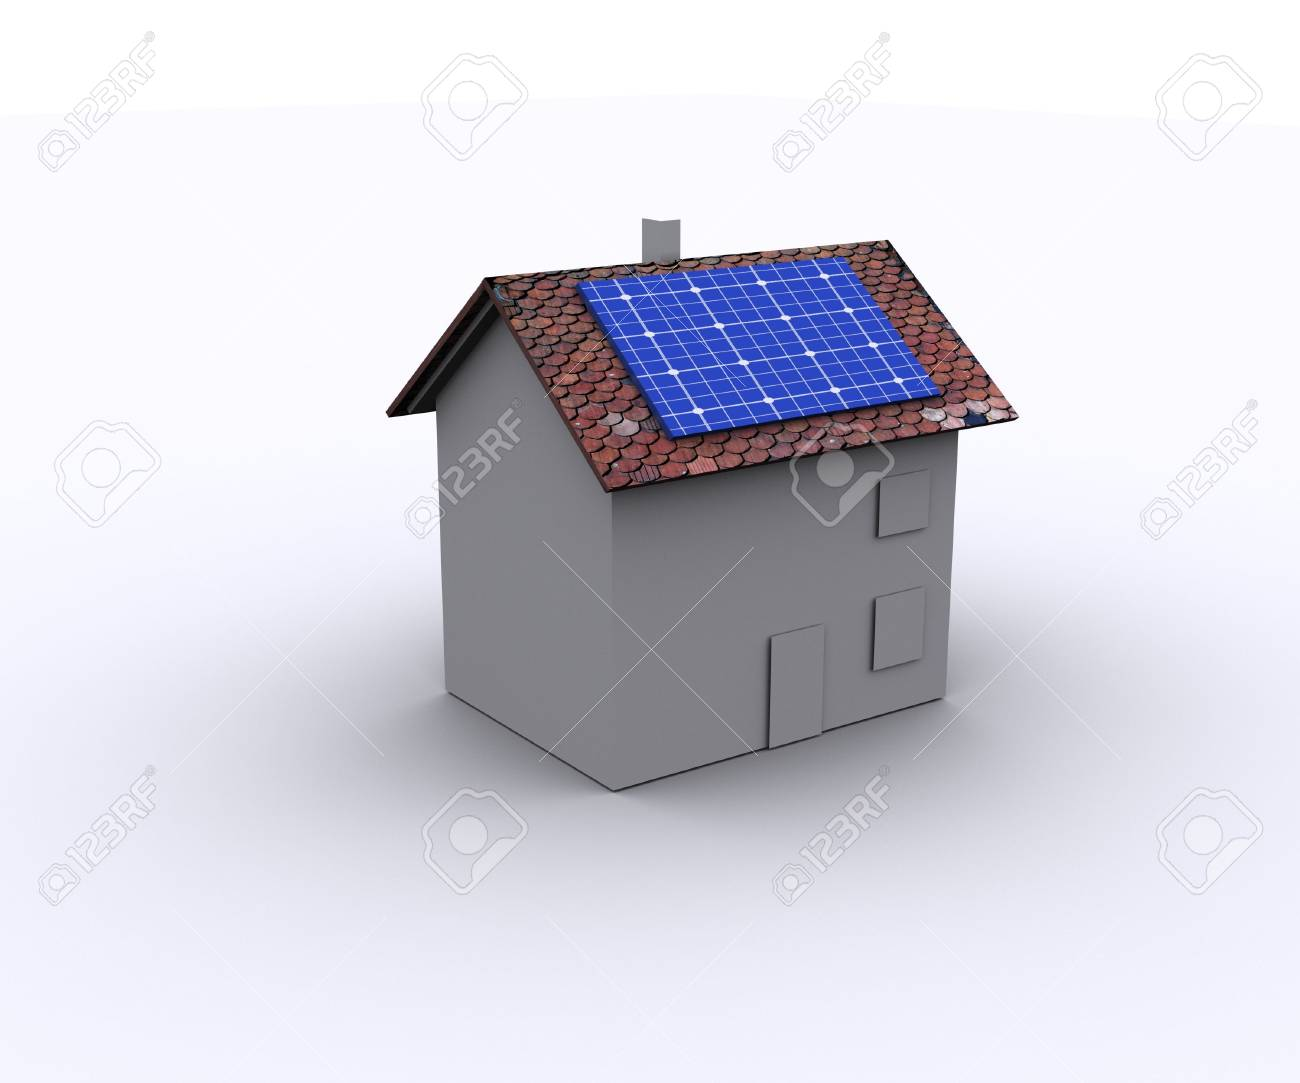 House With Solar Energy And Wind Turbine To Make Money And Protect ...